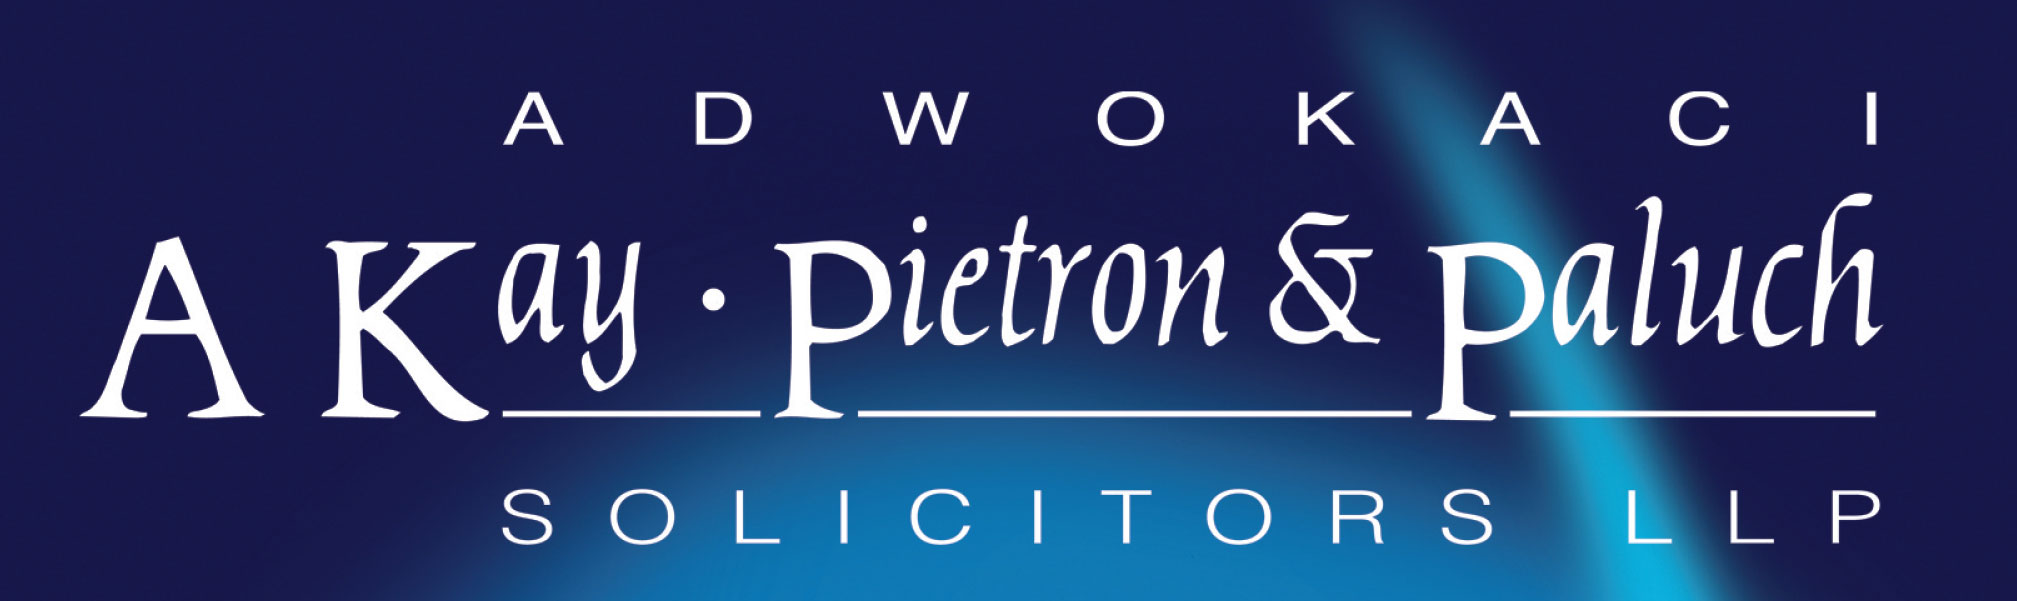 A Kay Pietron & Paluch Solicitors LLP